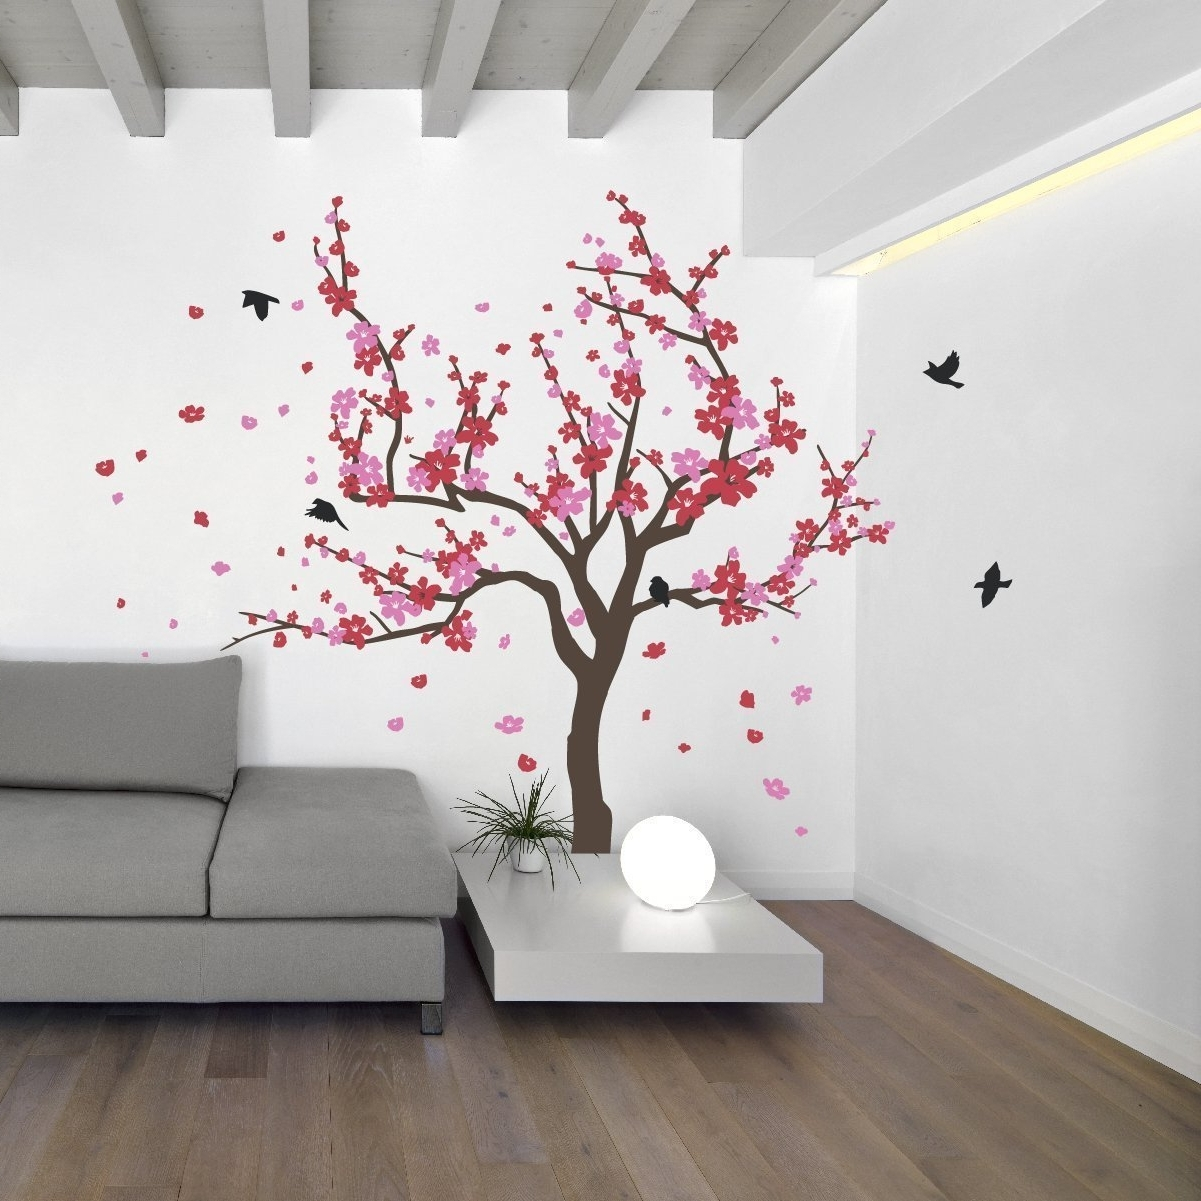 Famous Japanese Cherry Blossom Tree And Birds Wall Decal Sticker For With Red Cherry Blossom Wall Art (View 9 of 15)